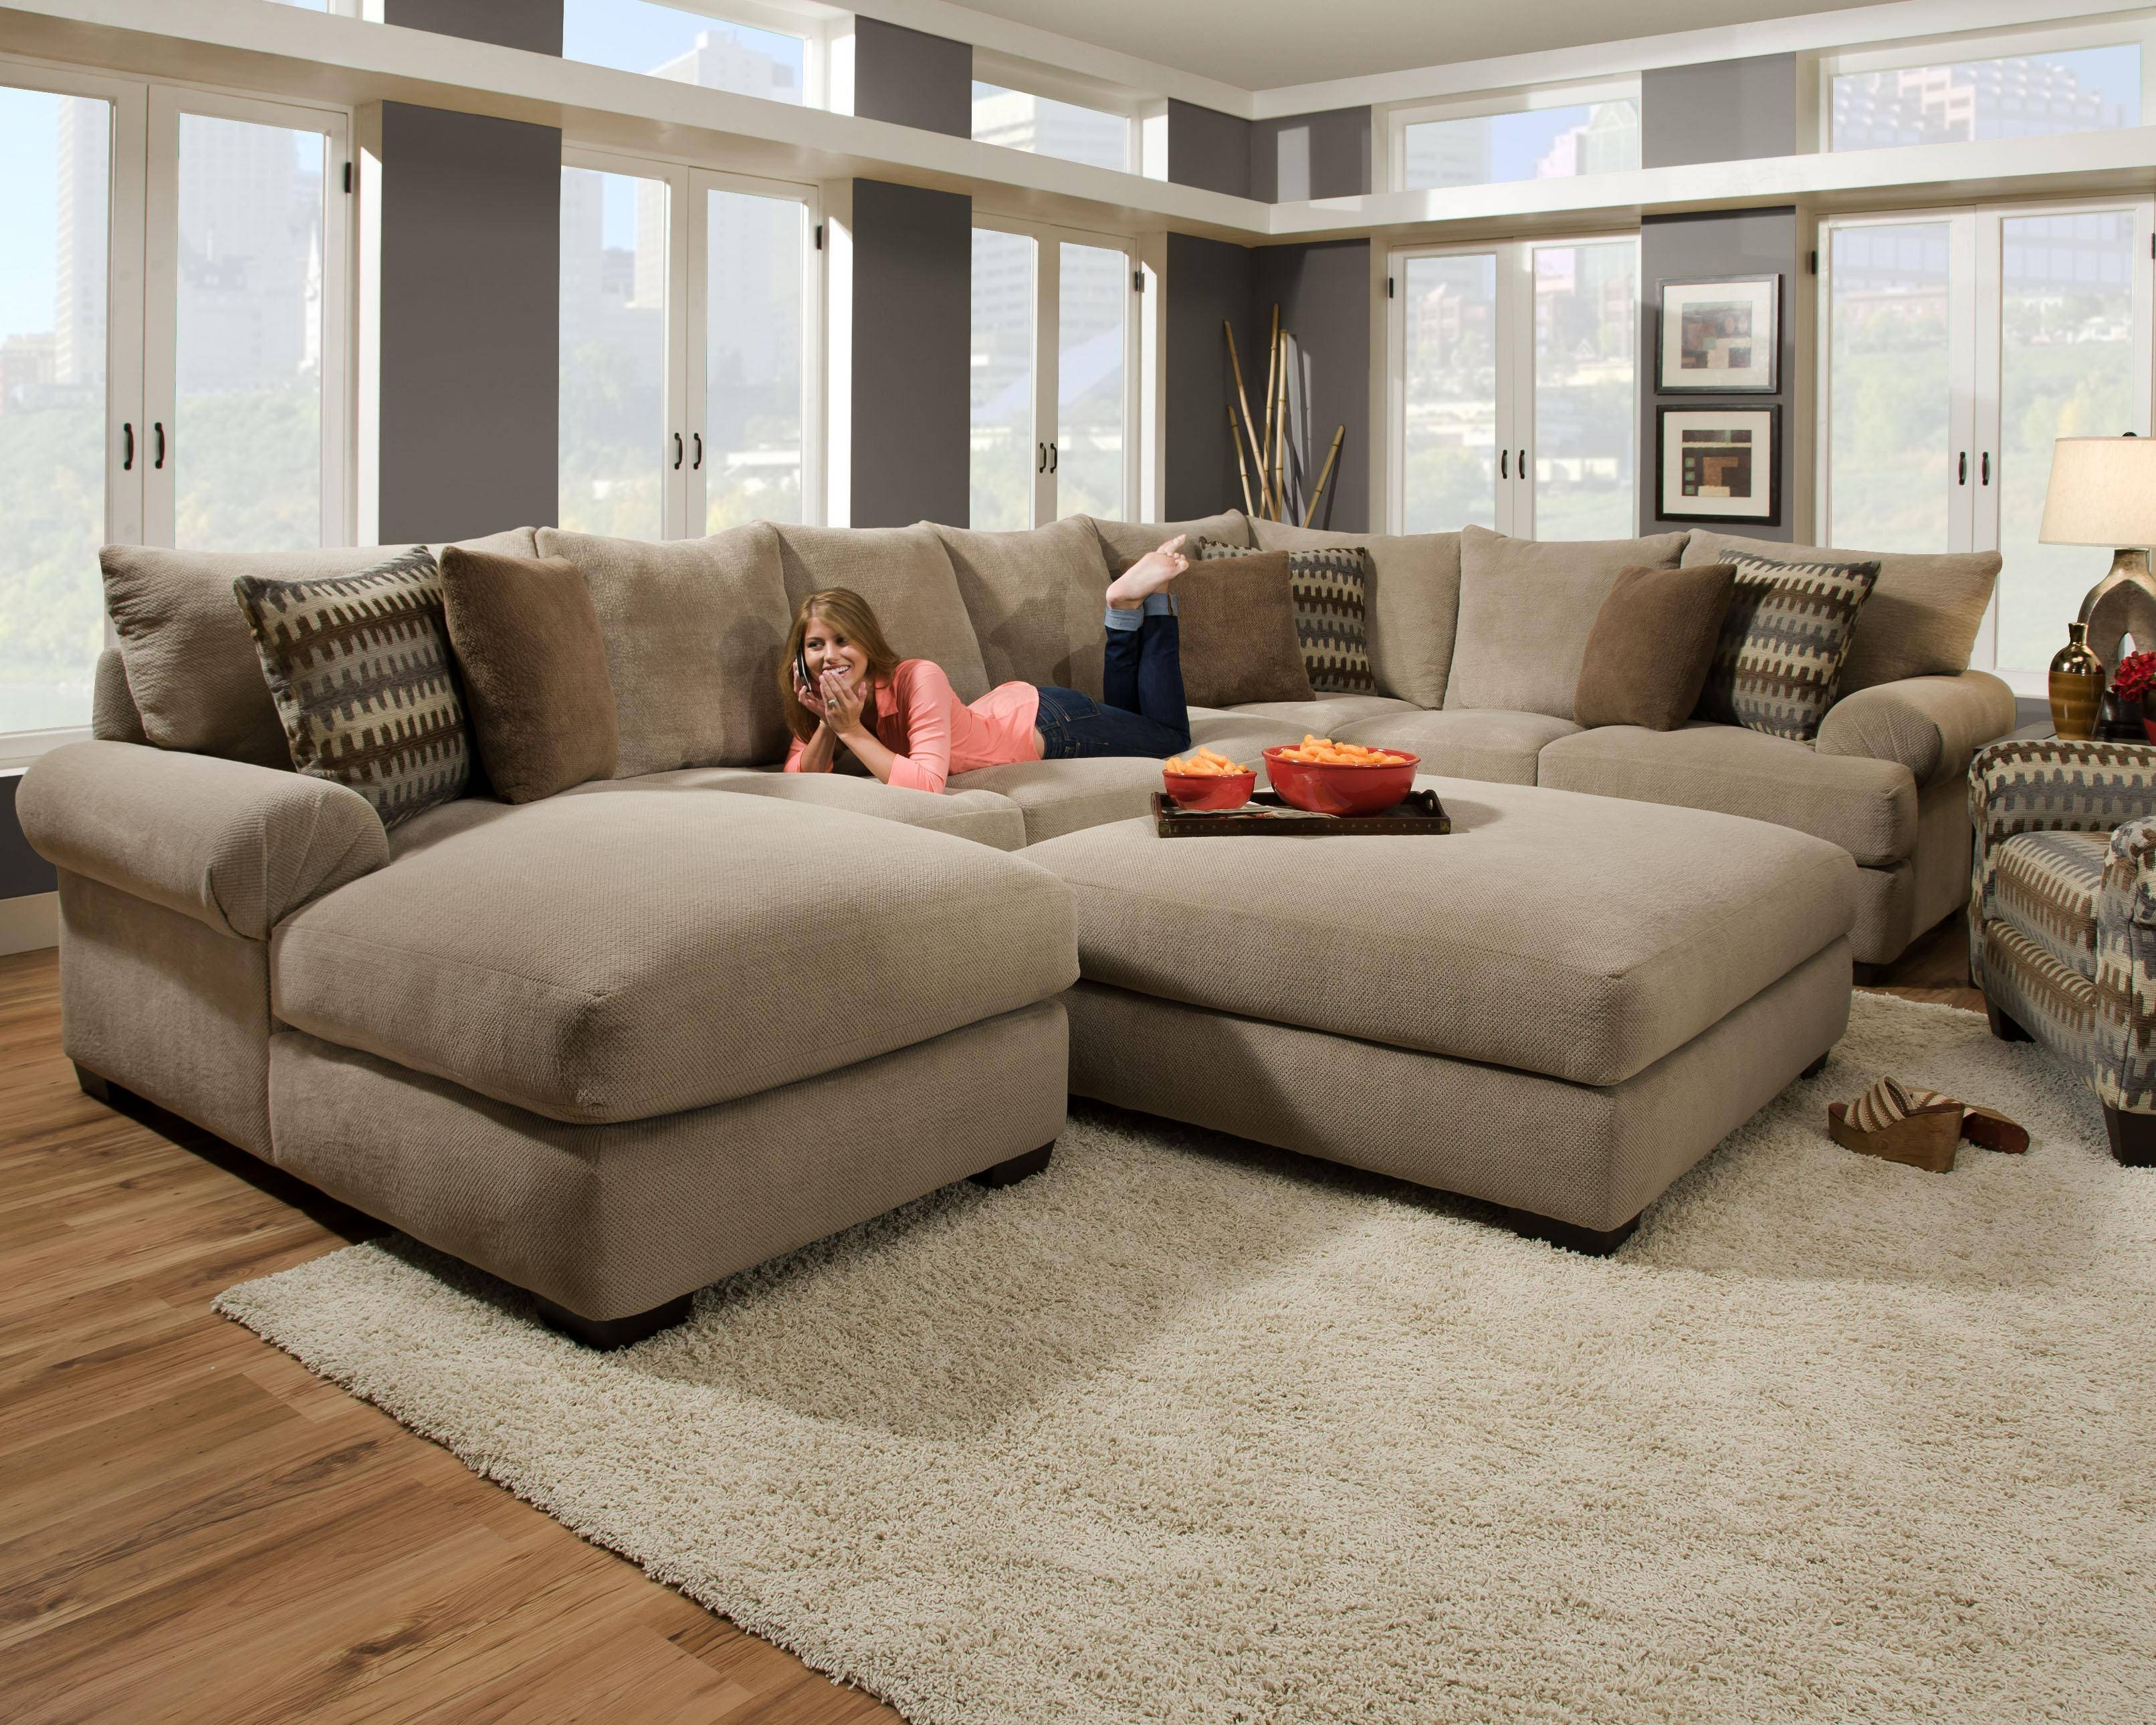 Furniture: Interesting Living Room Interior Using Large Sectional within Sofas and Sectionals (Image 11 of 30)